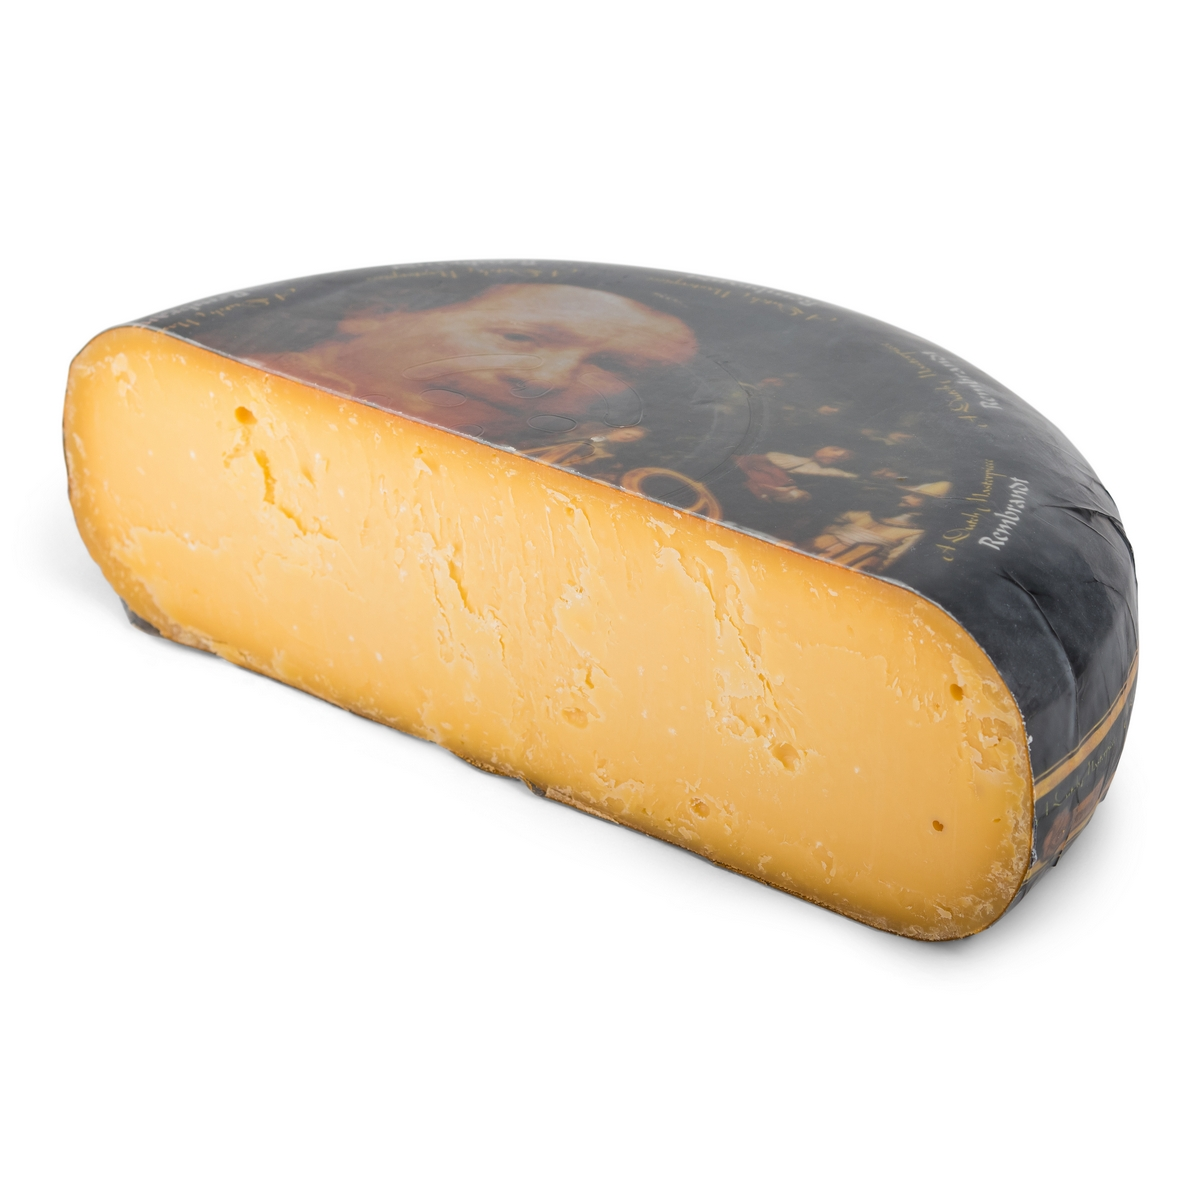 Aged cheese (+/- 10-12 months matured)